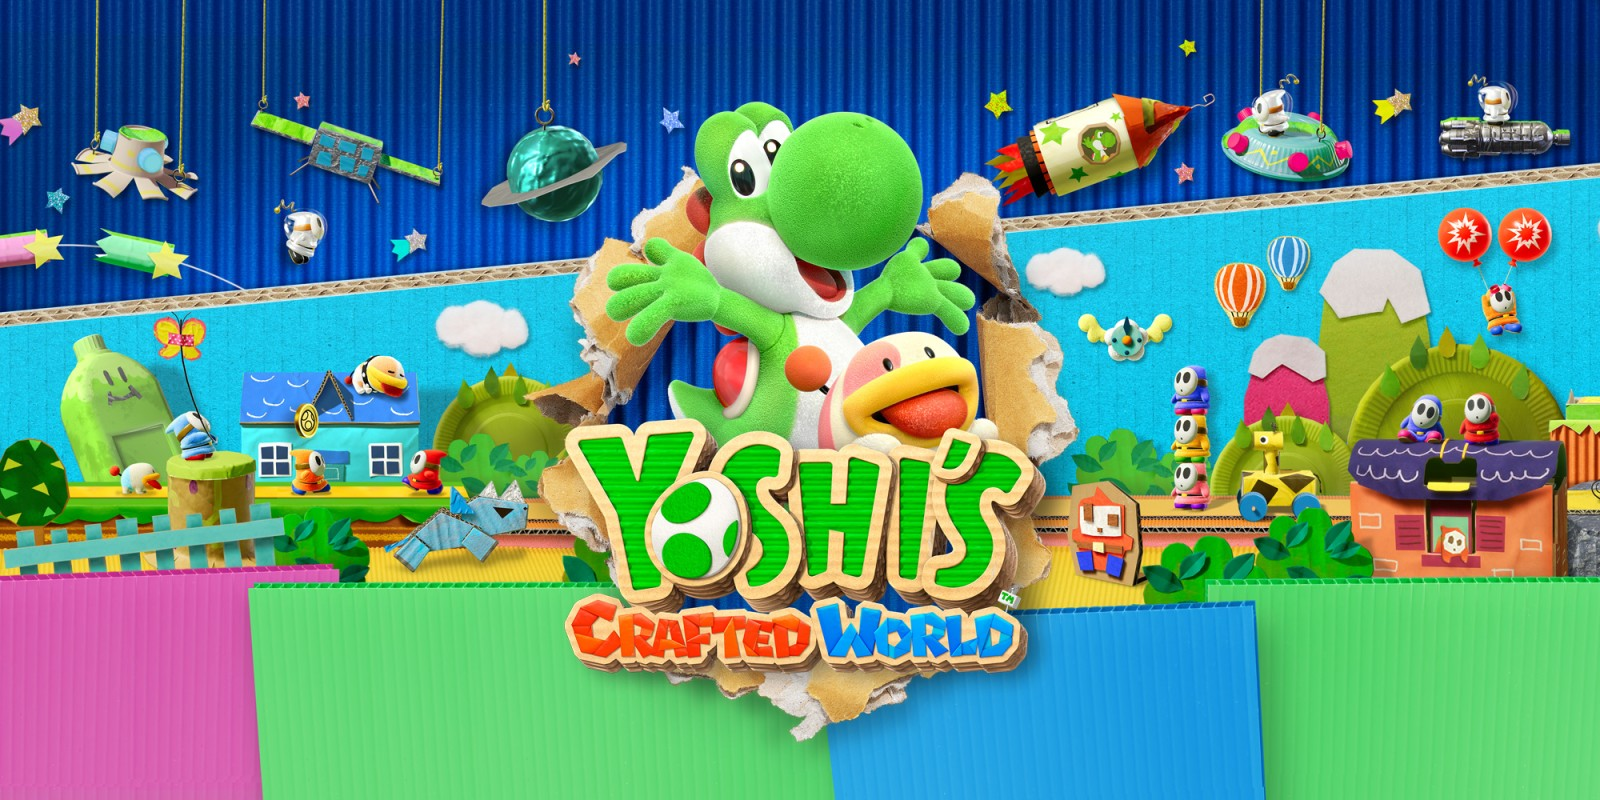 Yoshi's Crafted World: disponibile ufficialmente il nuovo titolo per Nintendo Switch thumbnail